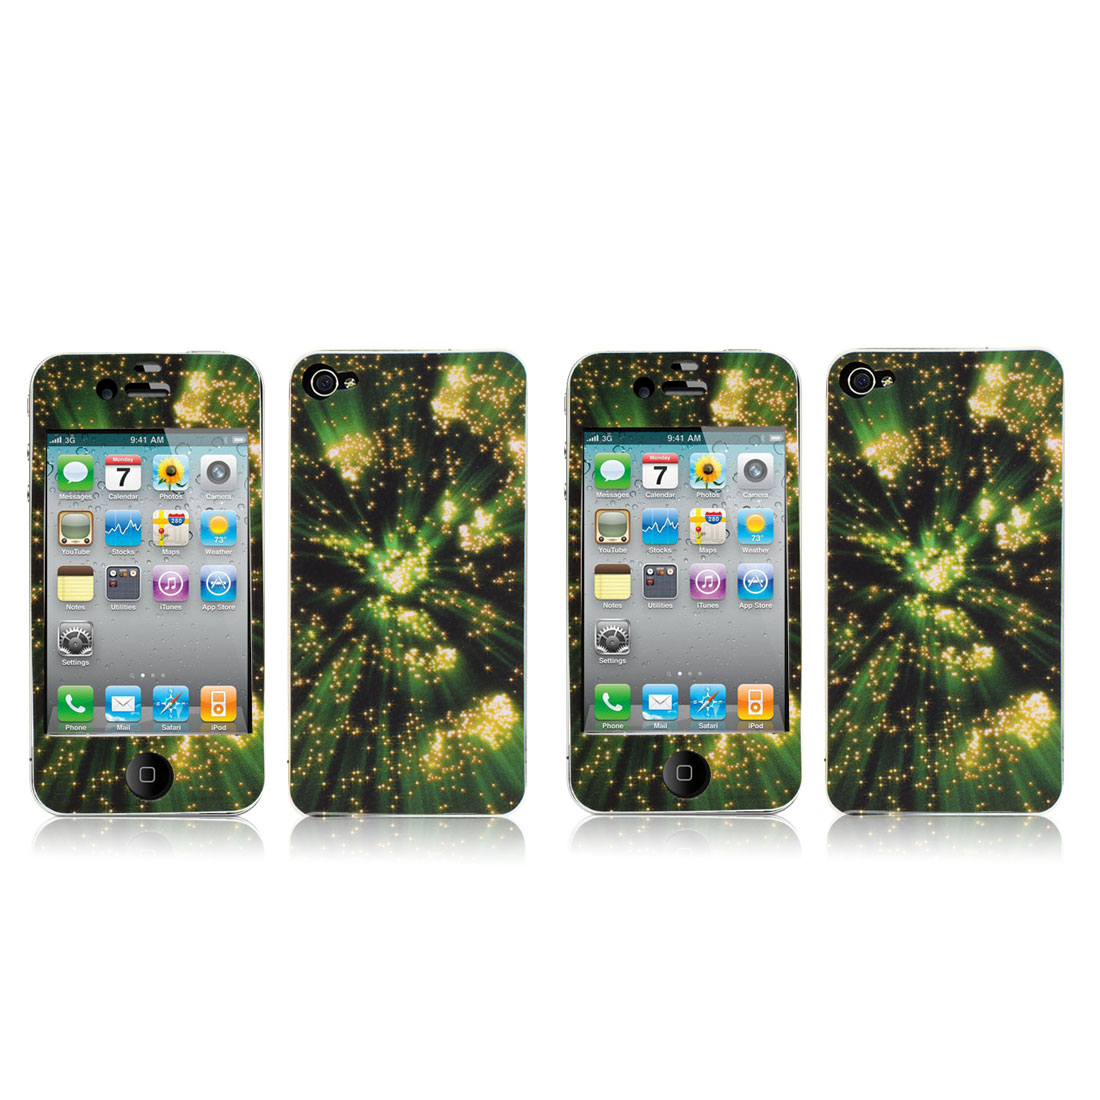 2 Pcs Star Sky Green Front Back Sticker Cover Protector for iPhone 4 4G 4S 4GS